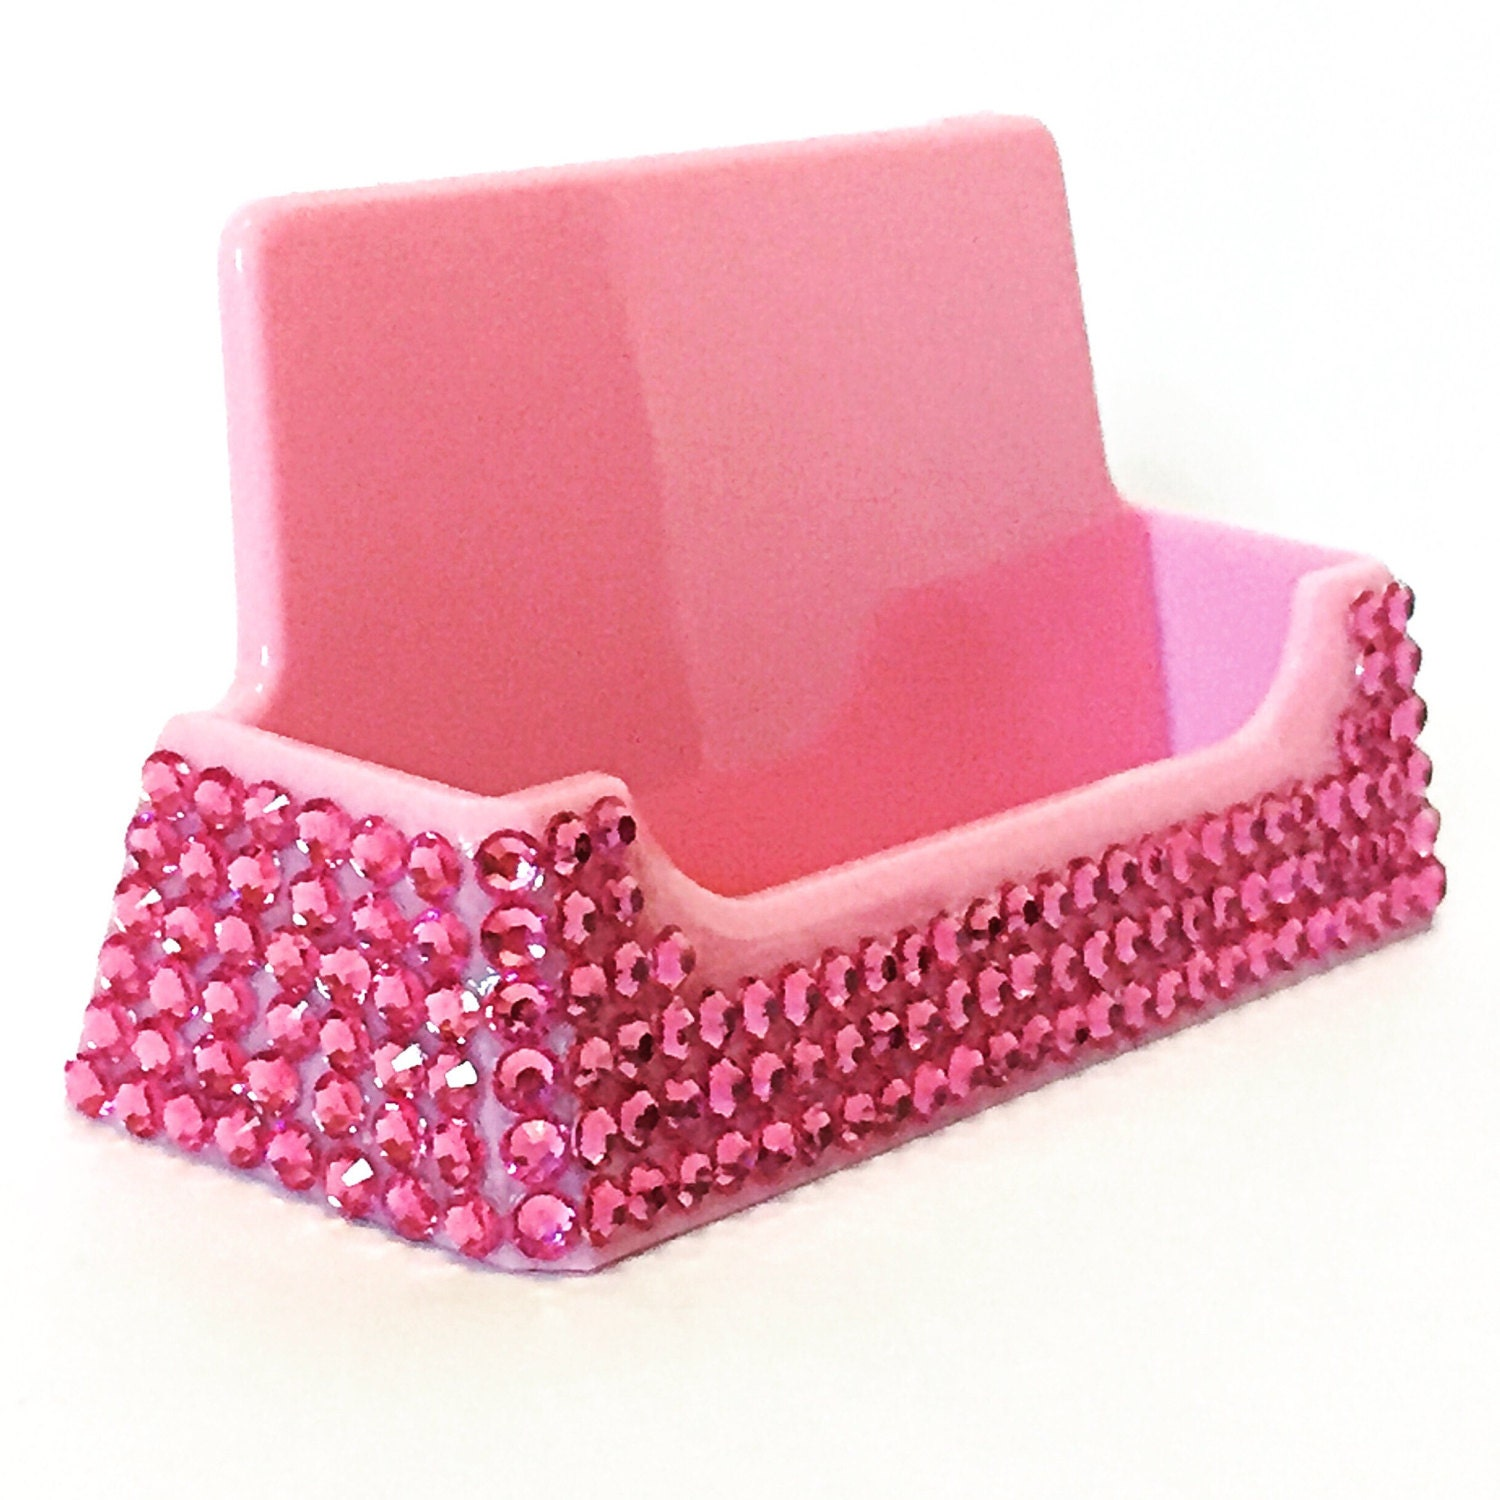 Silver bling bedazzed desk business card holder custom office pink bling business card holder bling desk accessories bling office supplies magicingreecefo Image collections